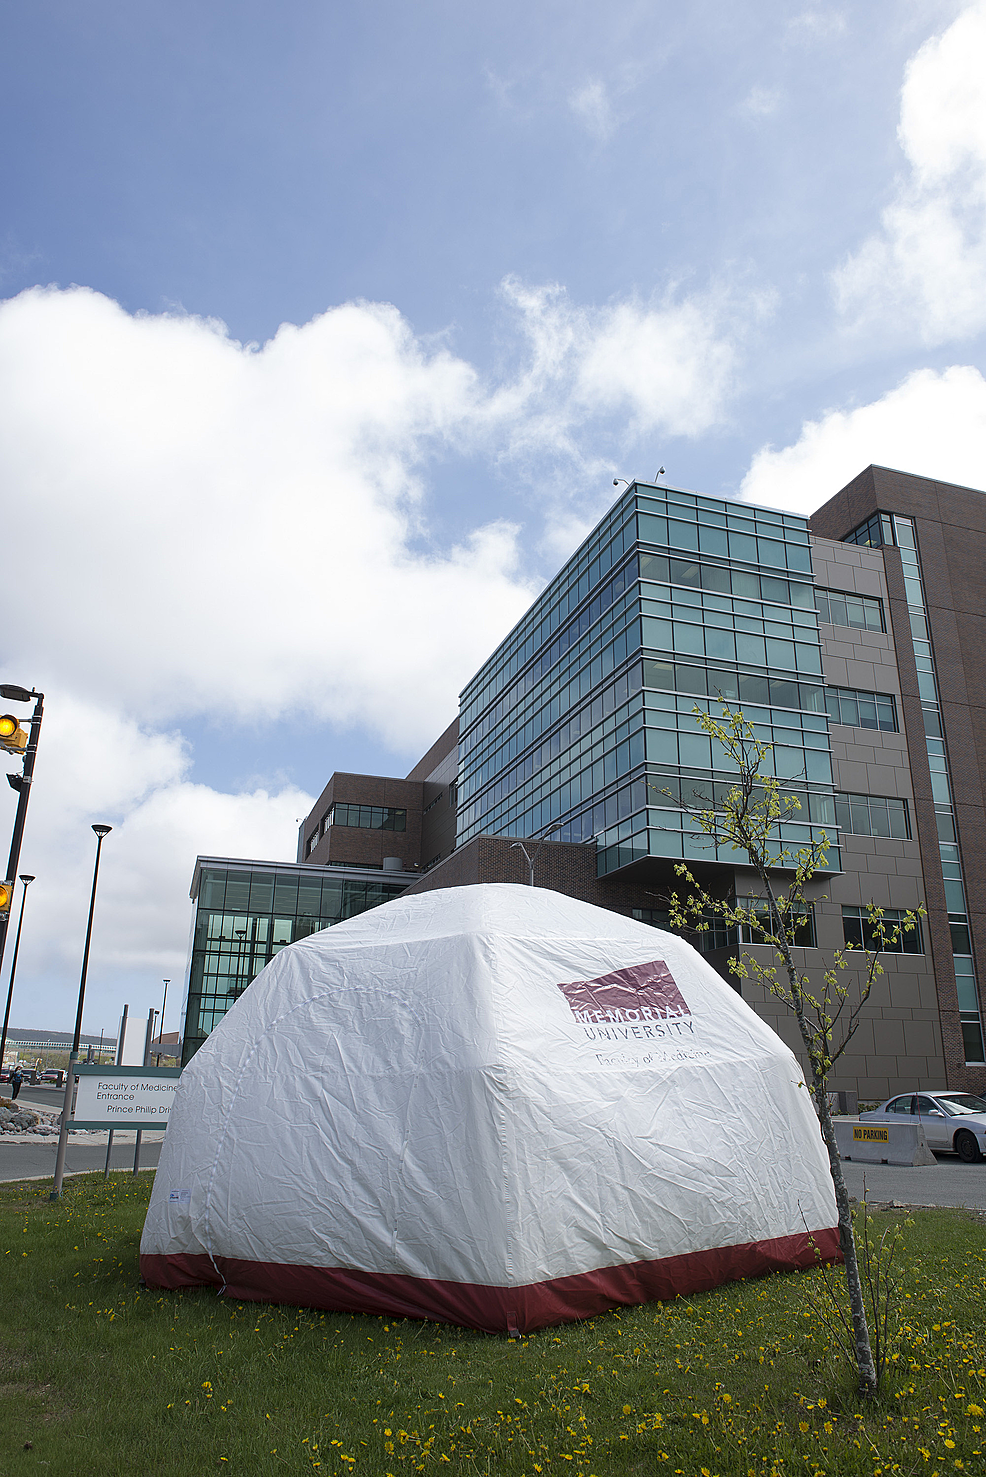 Mobile-tele-simulation-unit-prototype-outside-Memorial-University-of-Newfoundland-(Photo-by:-HSIMS,-MUN).